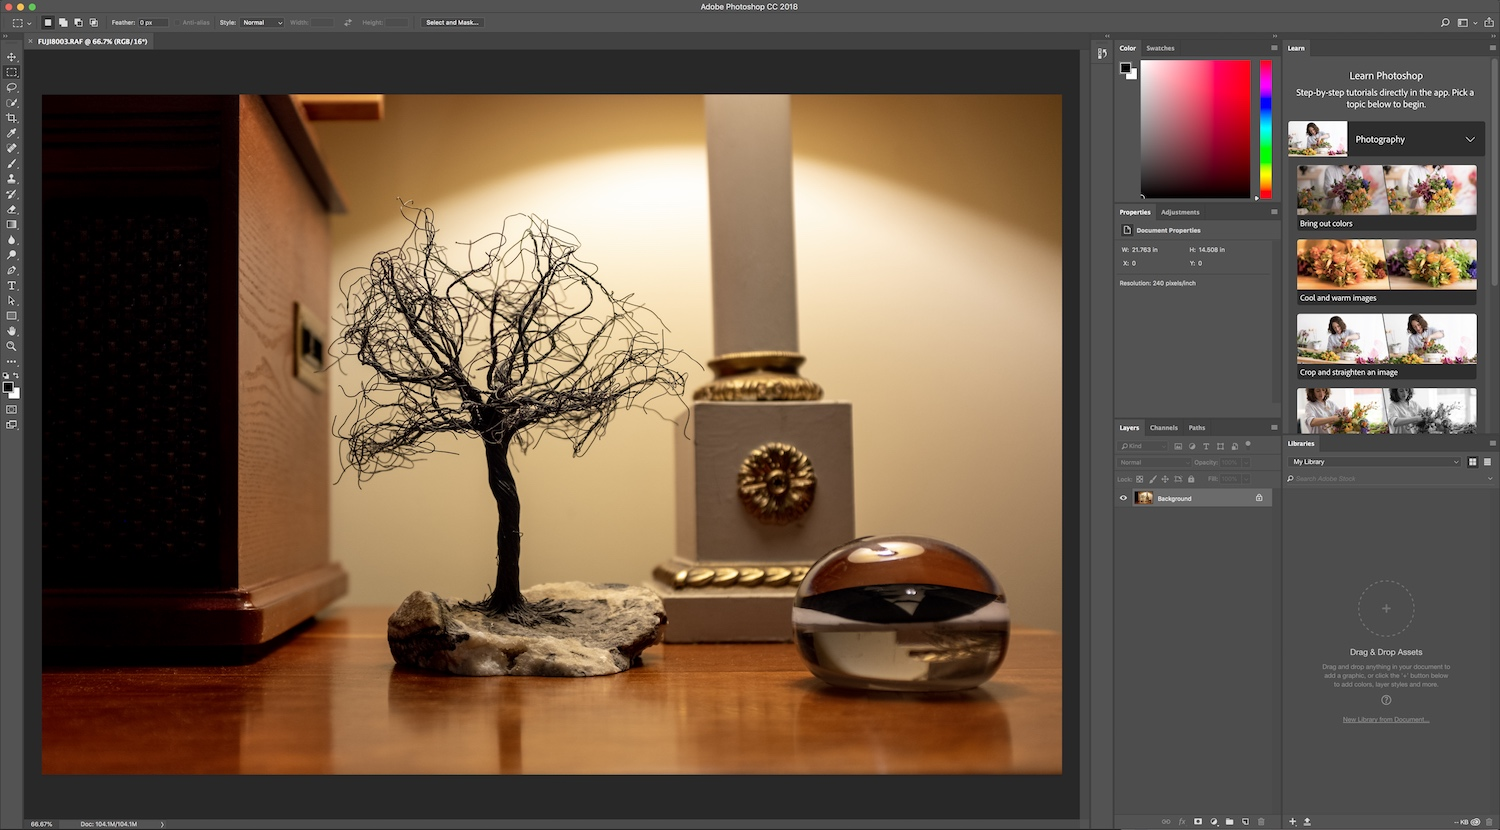 image in Photoshop - Five Reasons Why I Switched to Adobe Creative Cloud